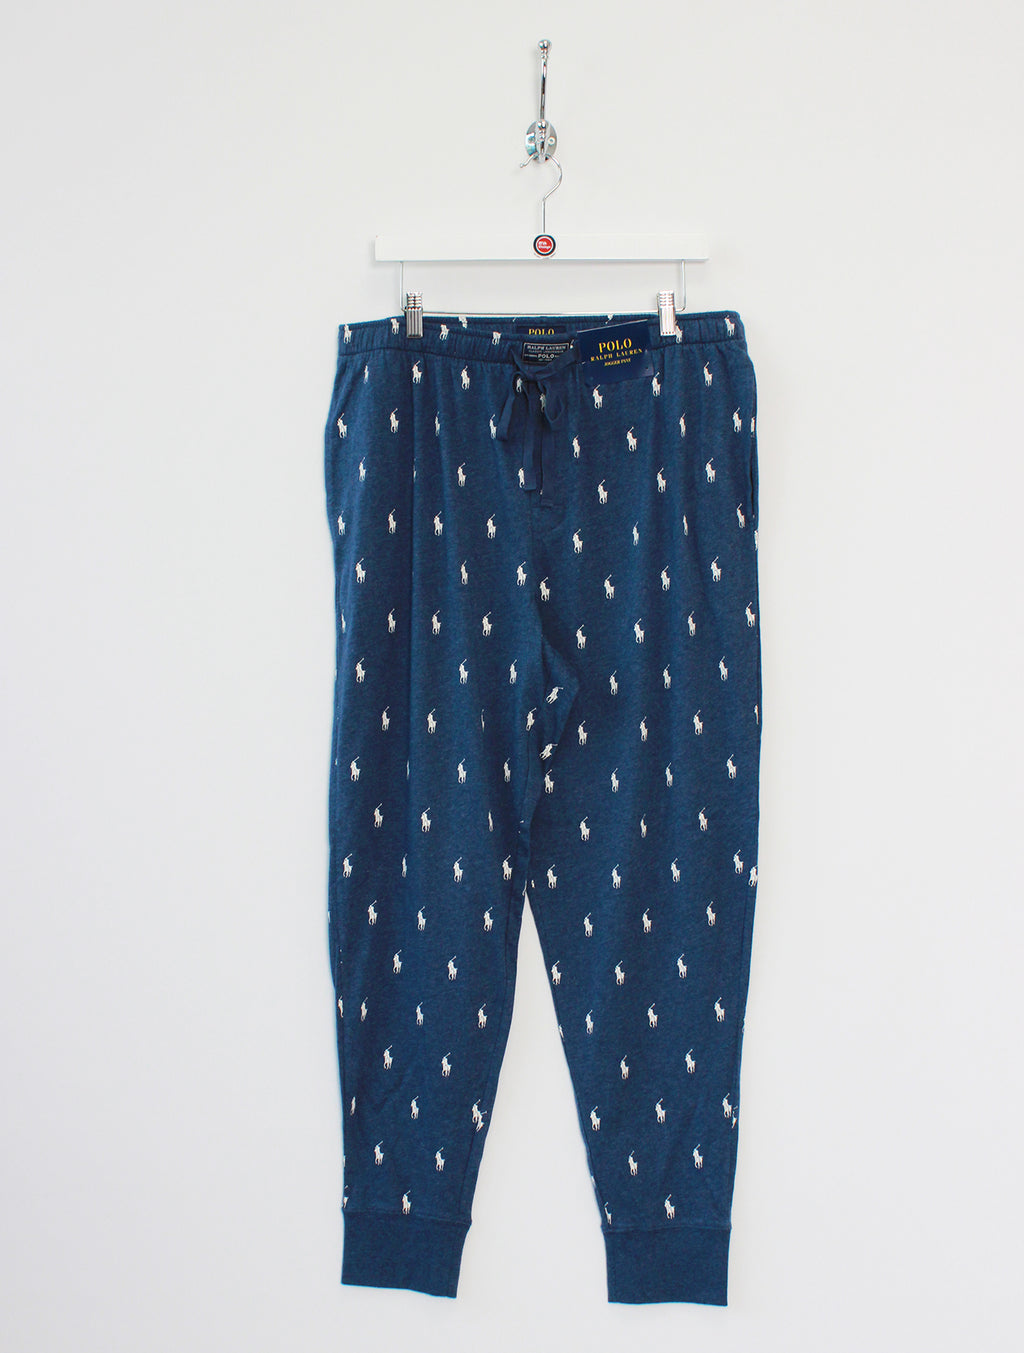 Ralph Lauren BNWT Lounge Pants (L)